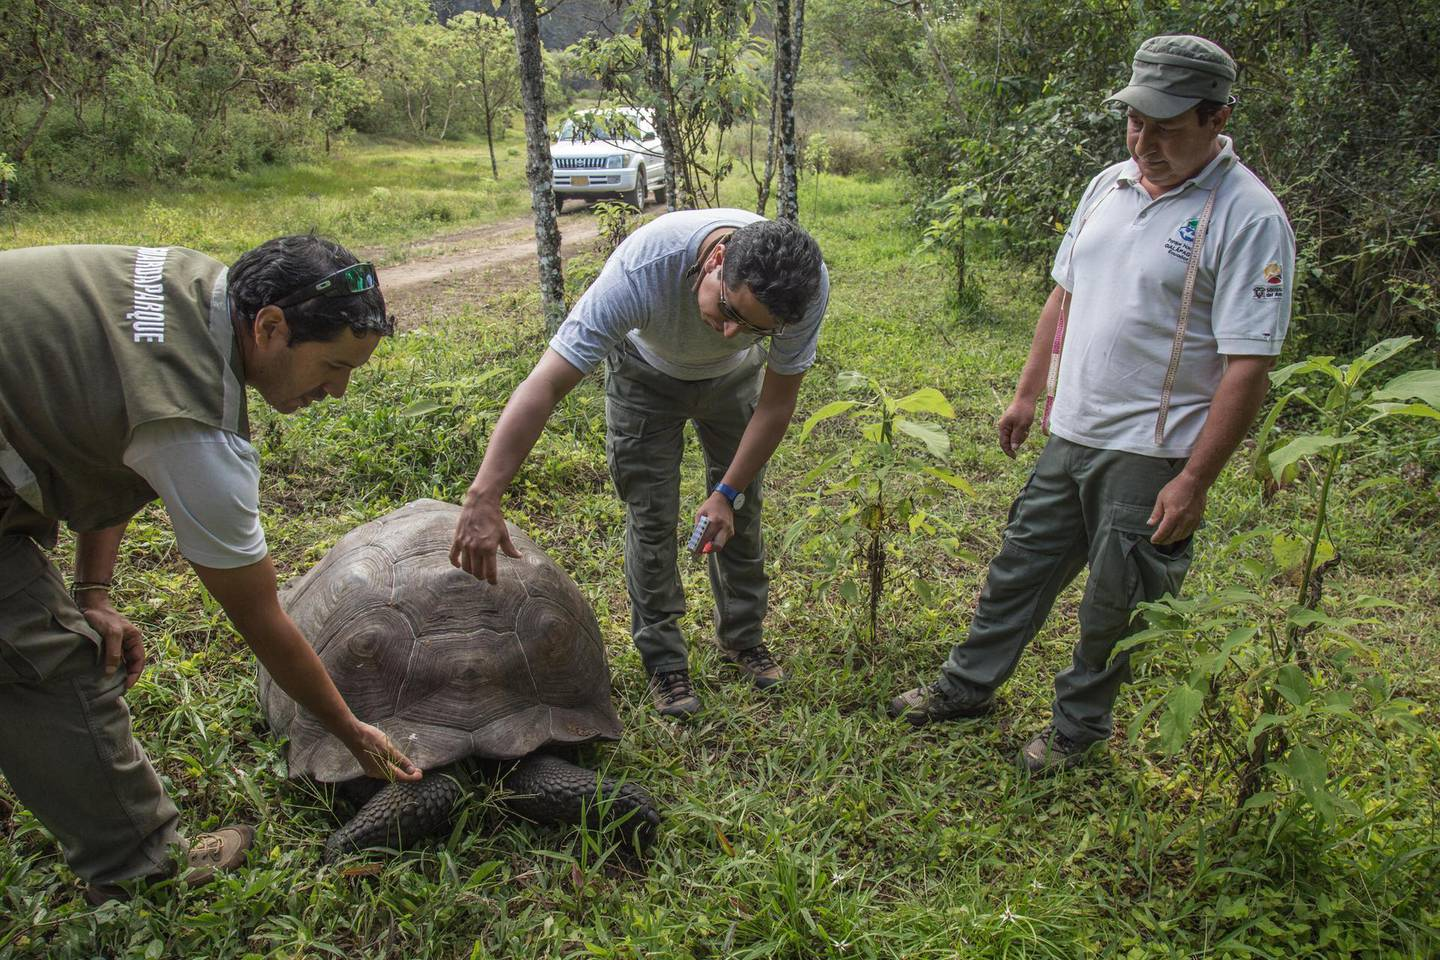 A Santa Cruz Island adult giant tortoise (Chelonoidis Donfaustoi) is examined by the director of the Galapagos National Park, Walter Bustos (C), and two park rangers on Santa Cruz Island, in the remote Ecuadorean archipelago 1000 km off South America's Pacific coast, on January 20, 2018. (Photo by Pablo COZZAGLIO / AFP)